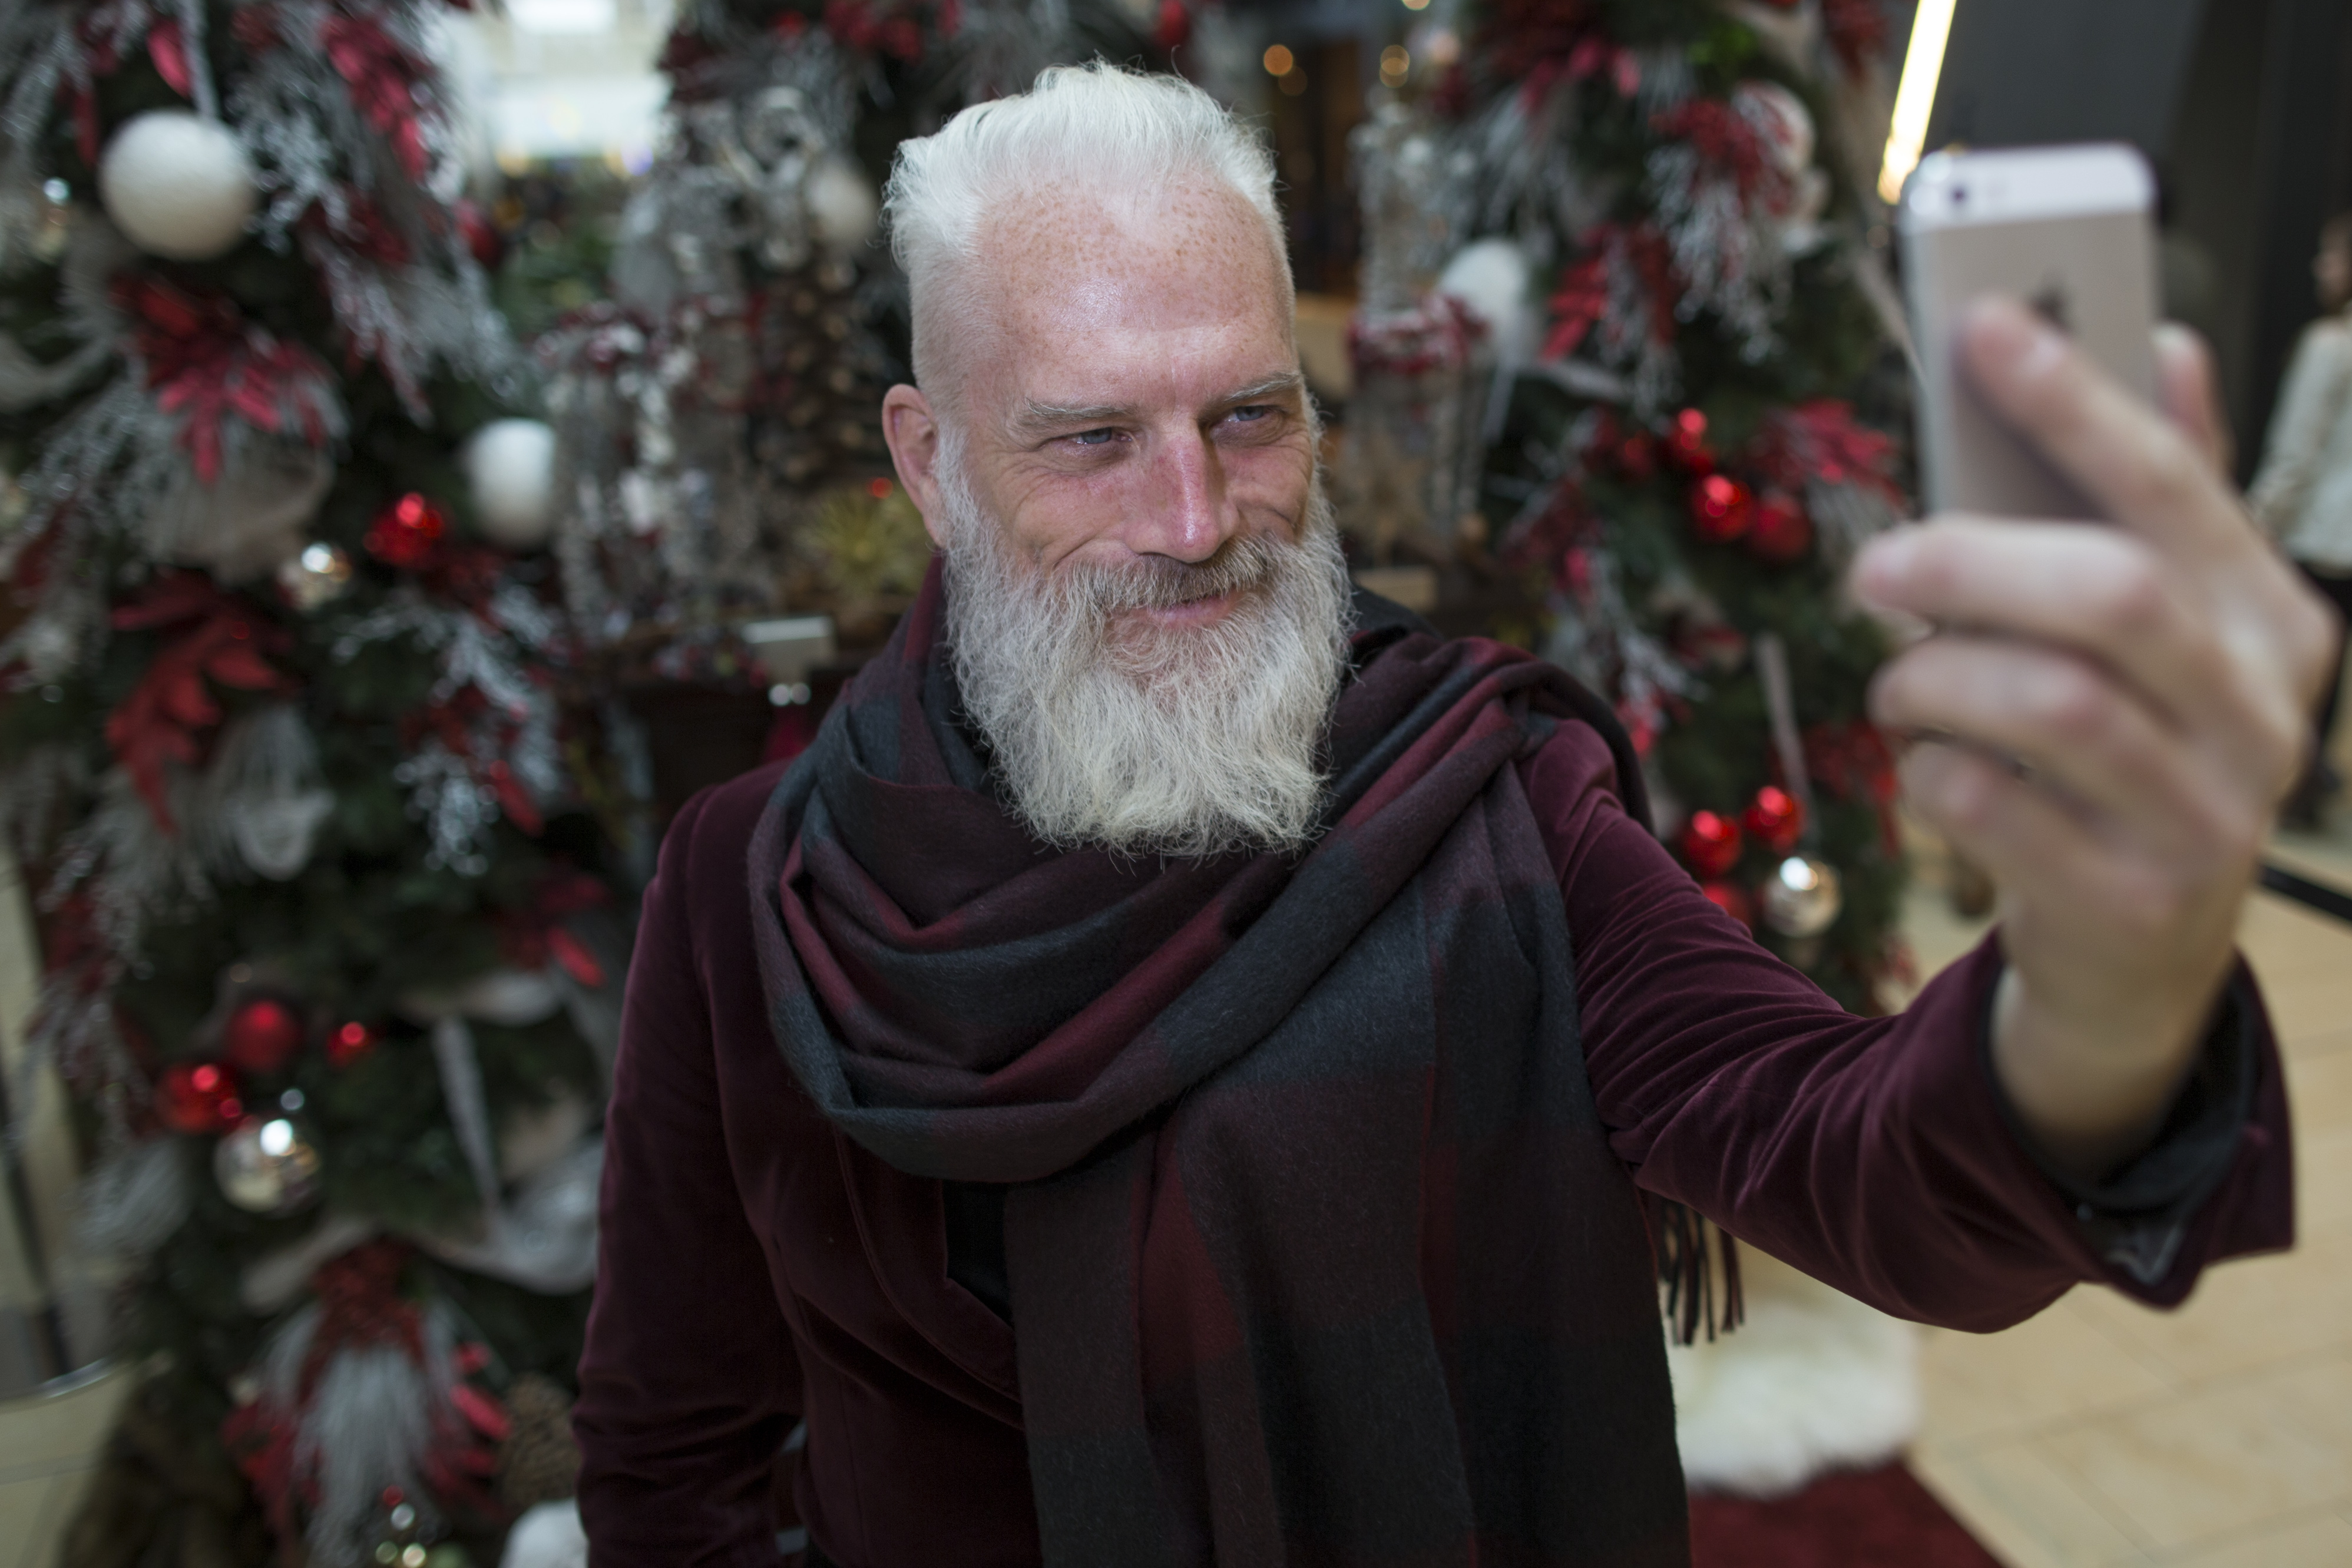 Fashion Santa, Paul Mason, will be working the holiday season at Yorkdale Mall where he will take selfies with mall patrons.  All proceeds will go to charity.